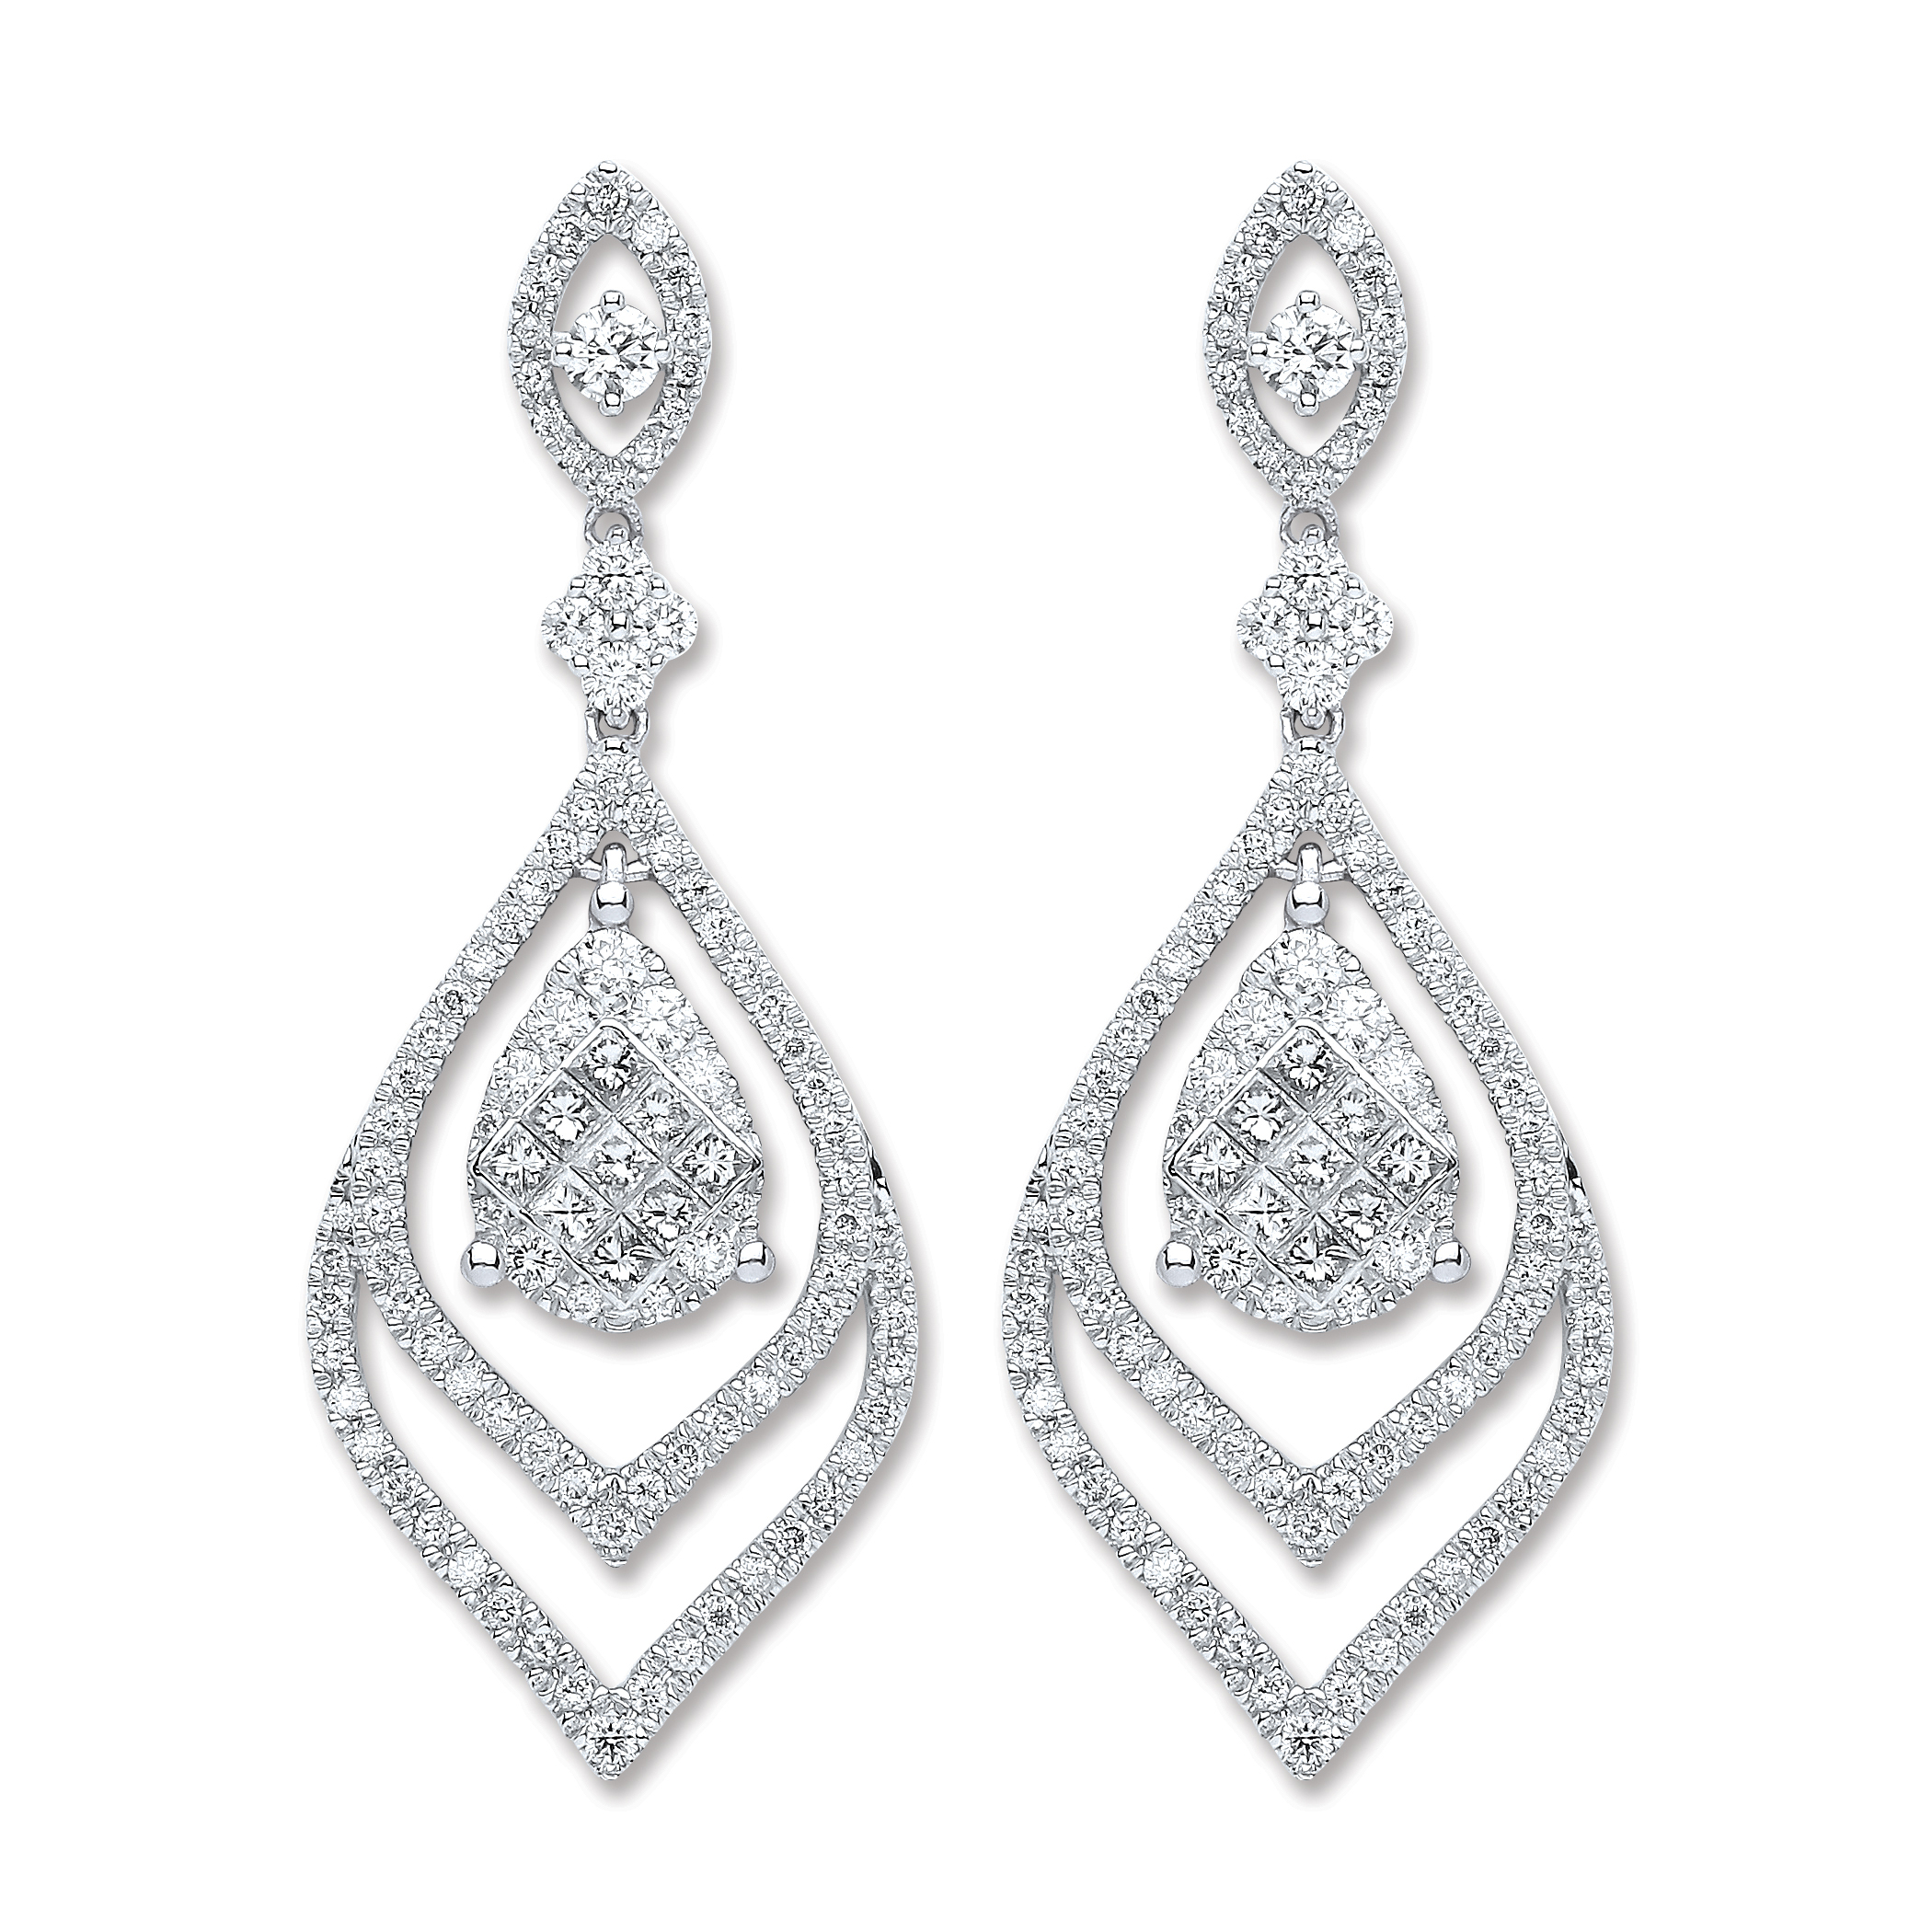 st pin from free duty stores gems best the jewellery earrings jewelry diamond at kwiat dk maarten